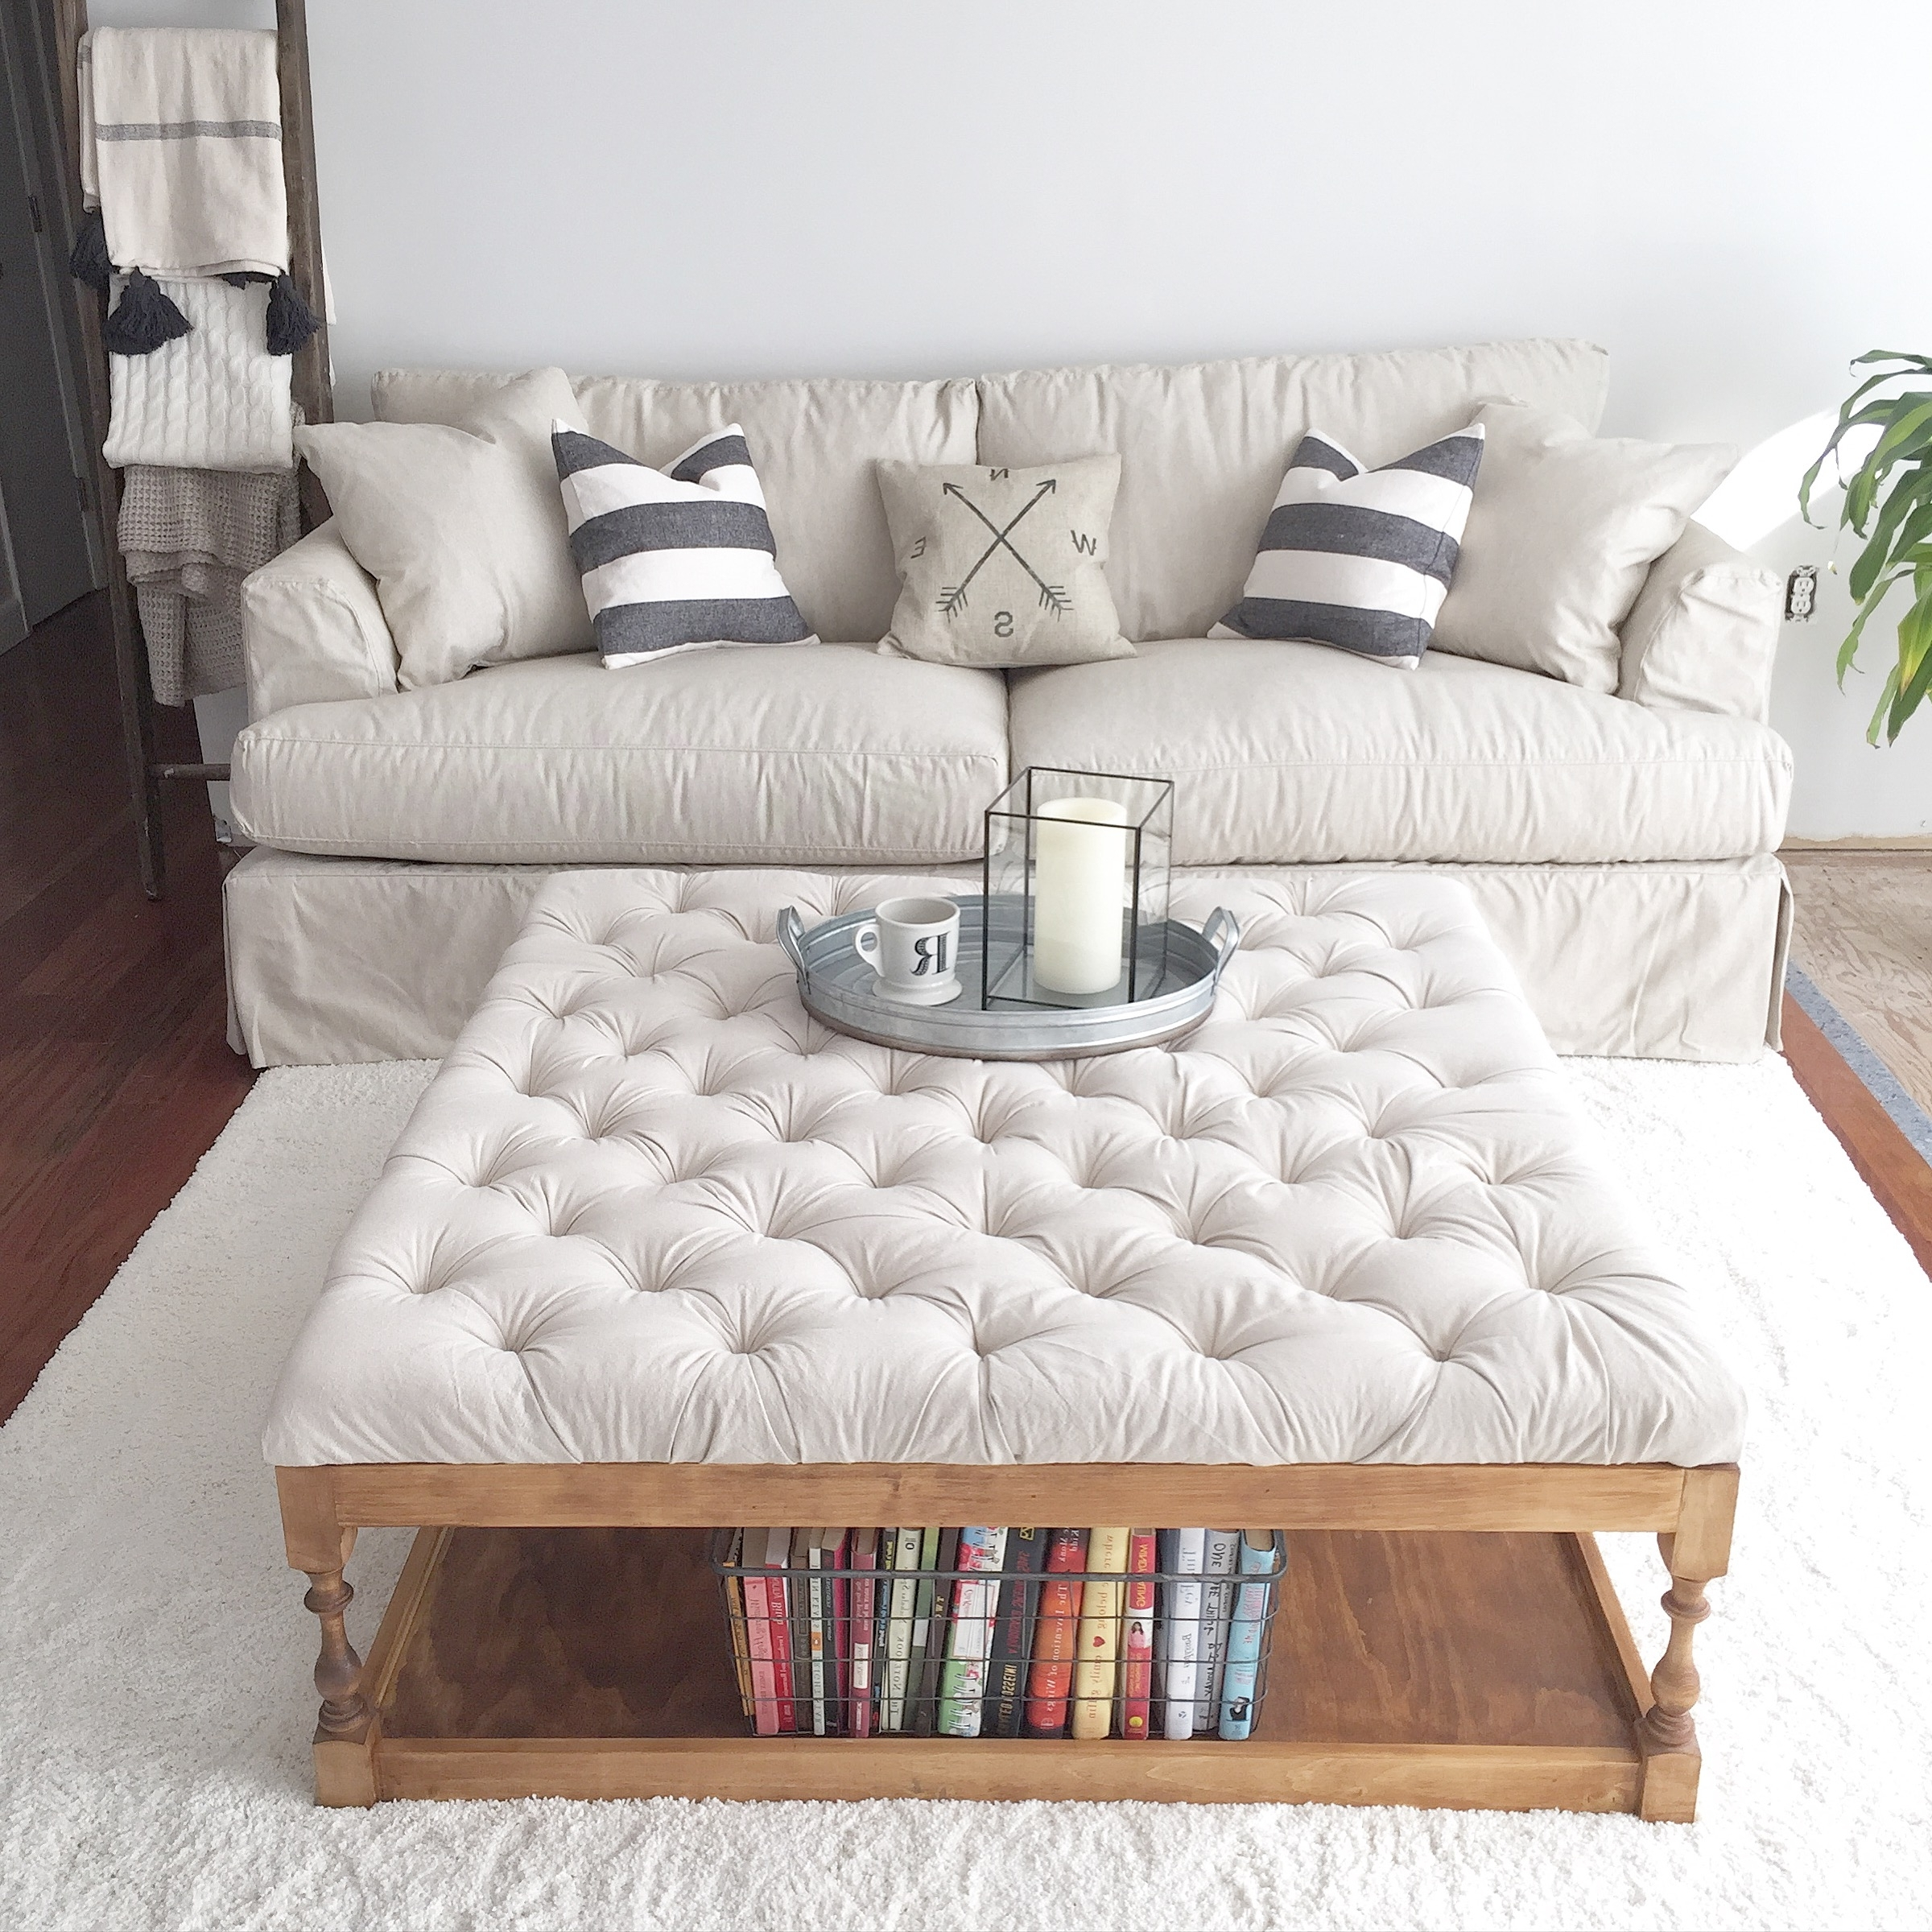 Widely Used Button Tufted Coffee Tables In Royal Charm Button Tufted Coffee Tables For Interior (View 10 of 20)